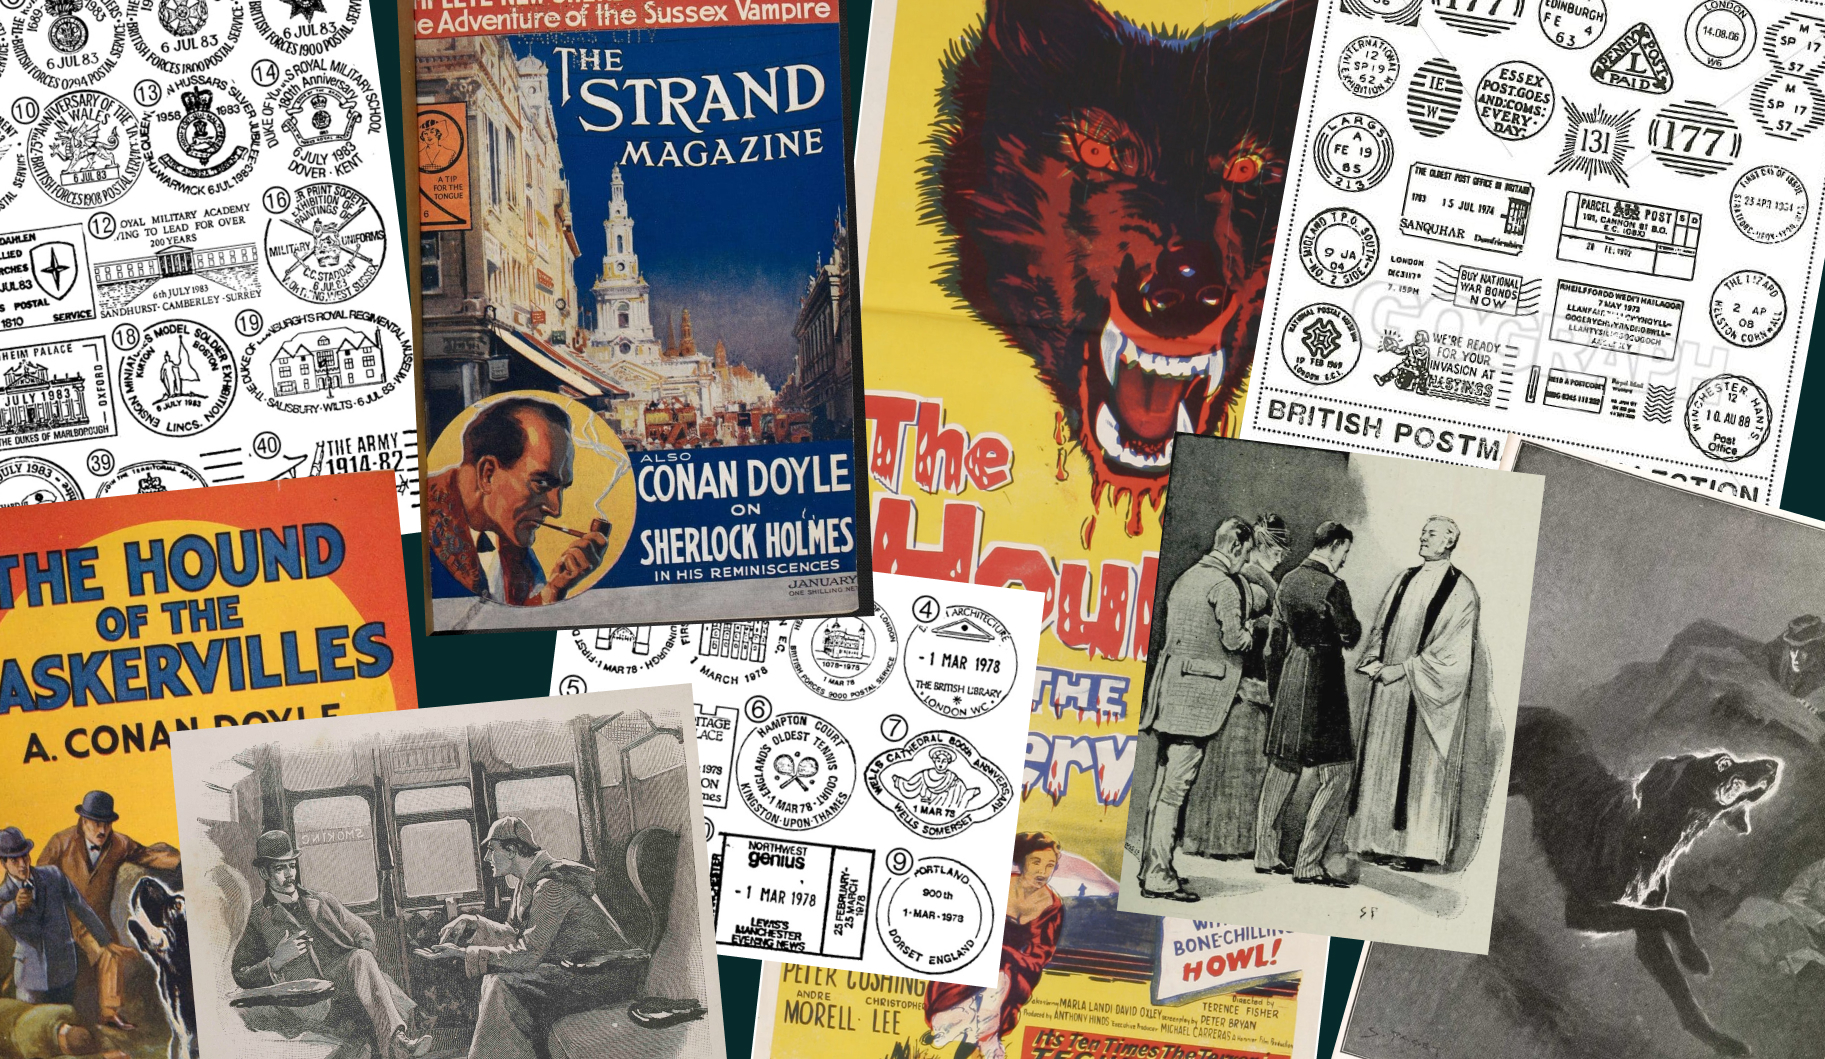 Collage showing inspirations for the brand including British postmarks, Sherlock Holmes posters, novels and SIdney Paget illustrations